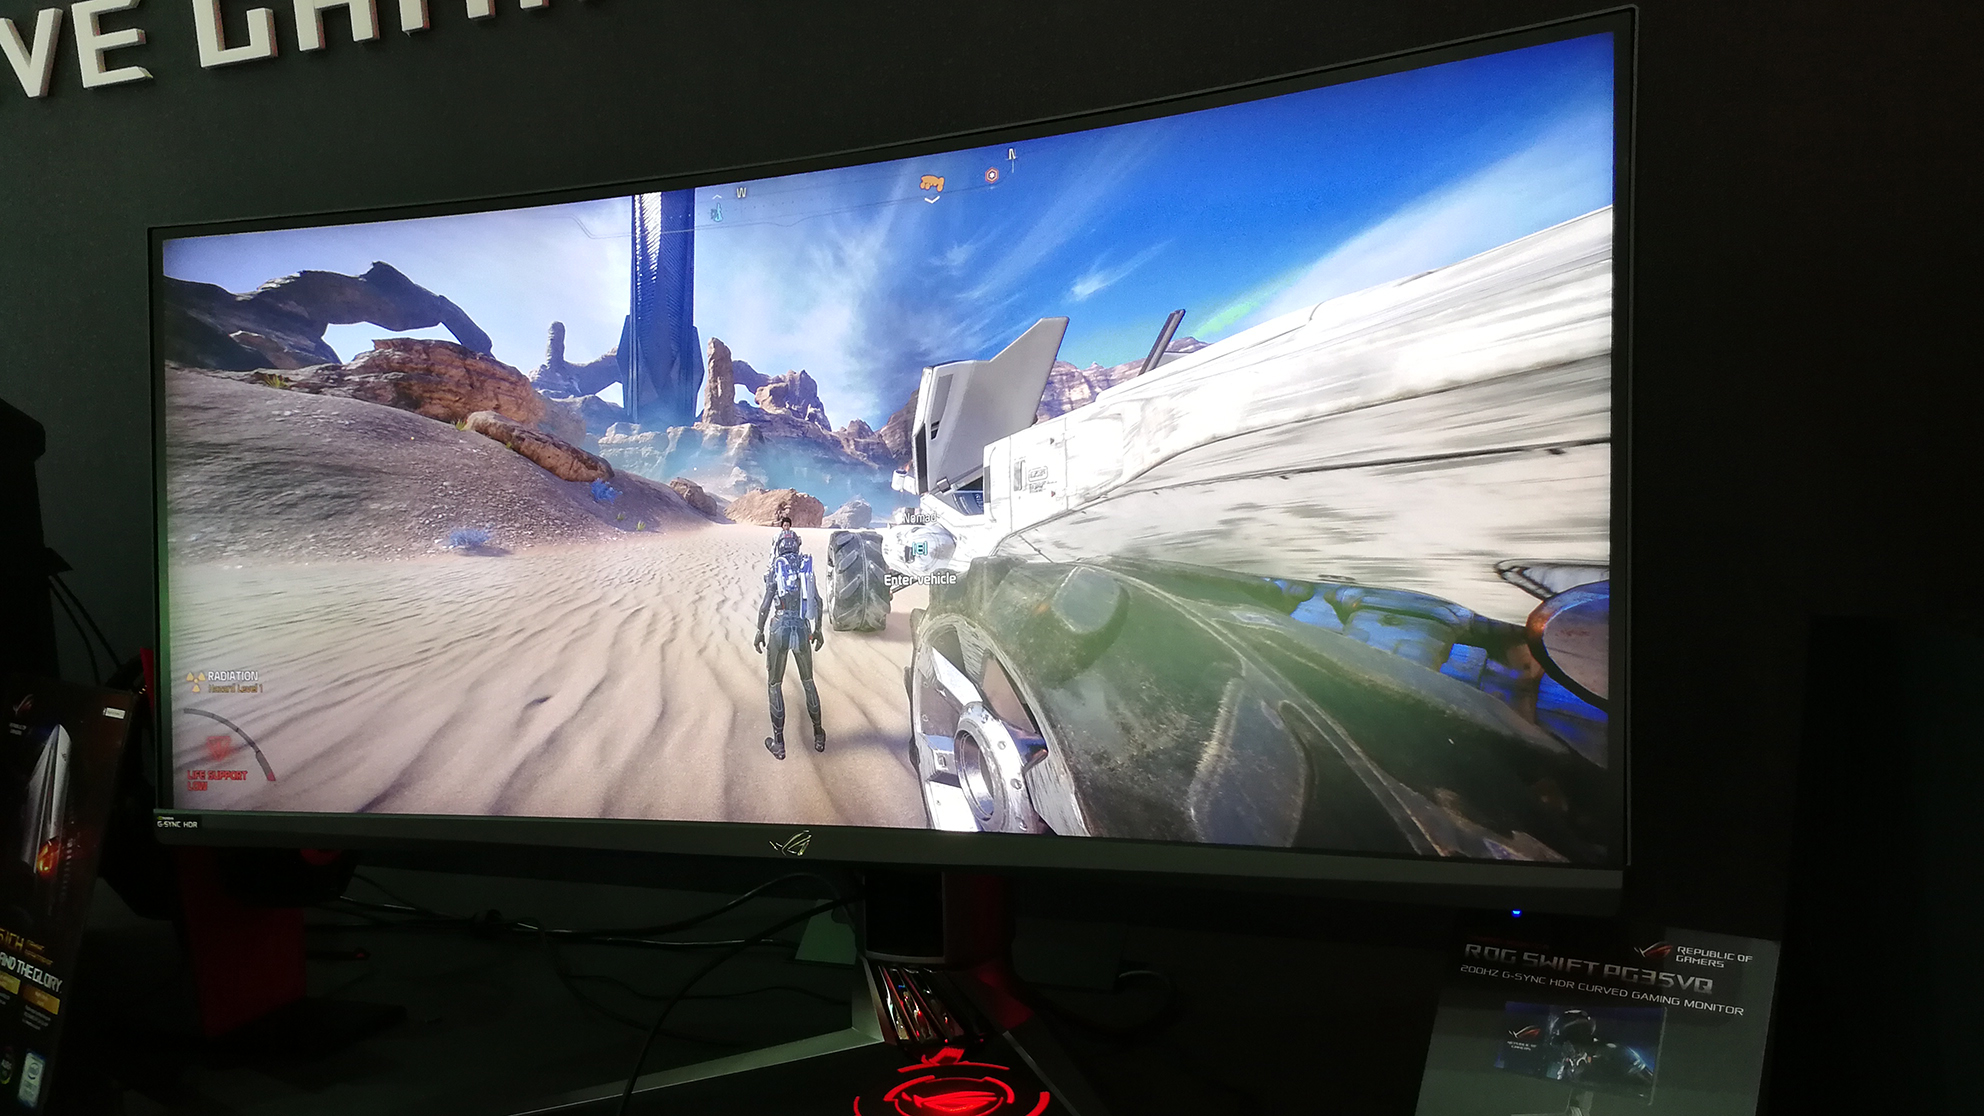 The new Asus ROG gaming monitor goes ultra wide and super speedy